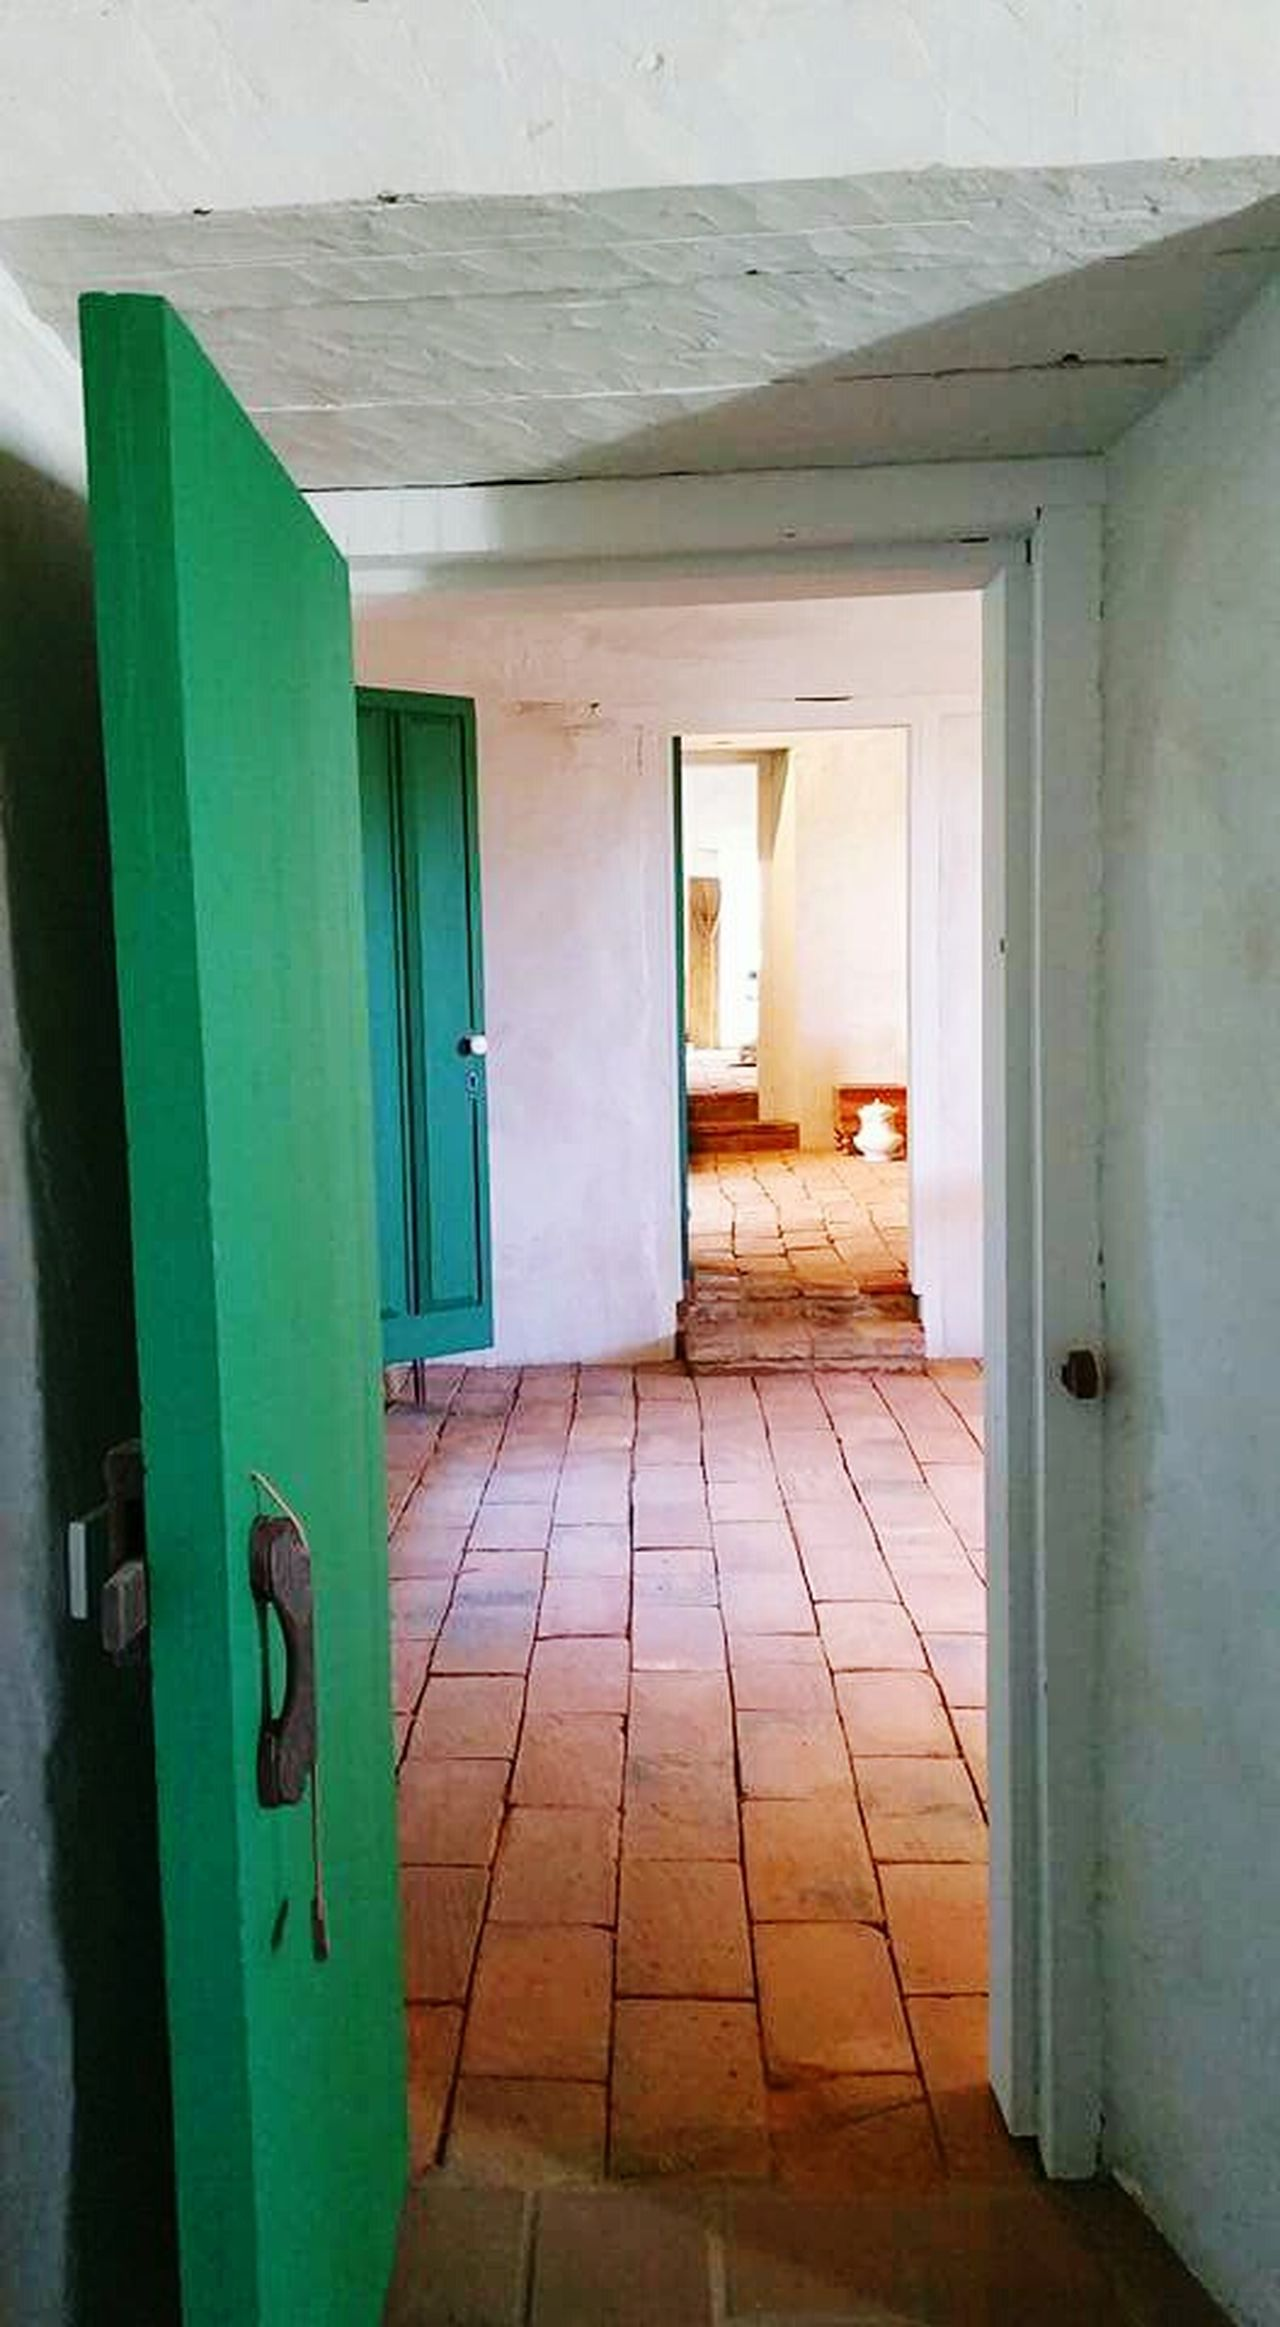 Open Doors  Alignment Tile Floor Architecture Architecture_collection California Old Town San Diego Design House Green Green Doors Adobe Walls